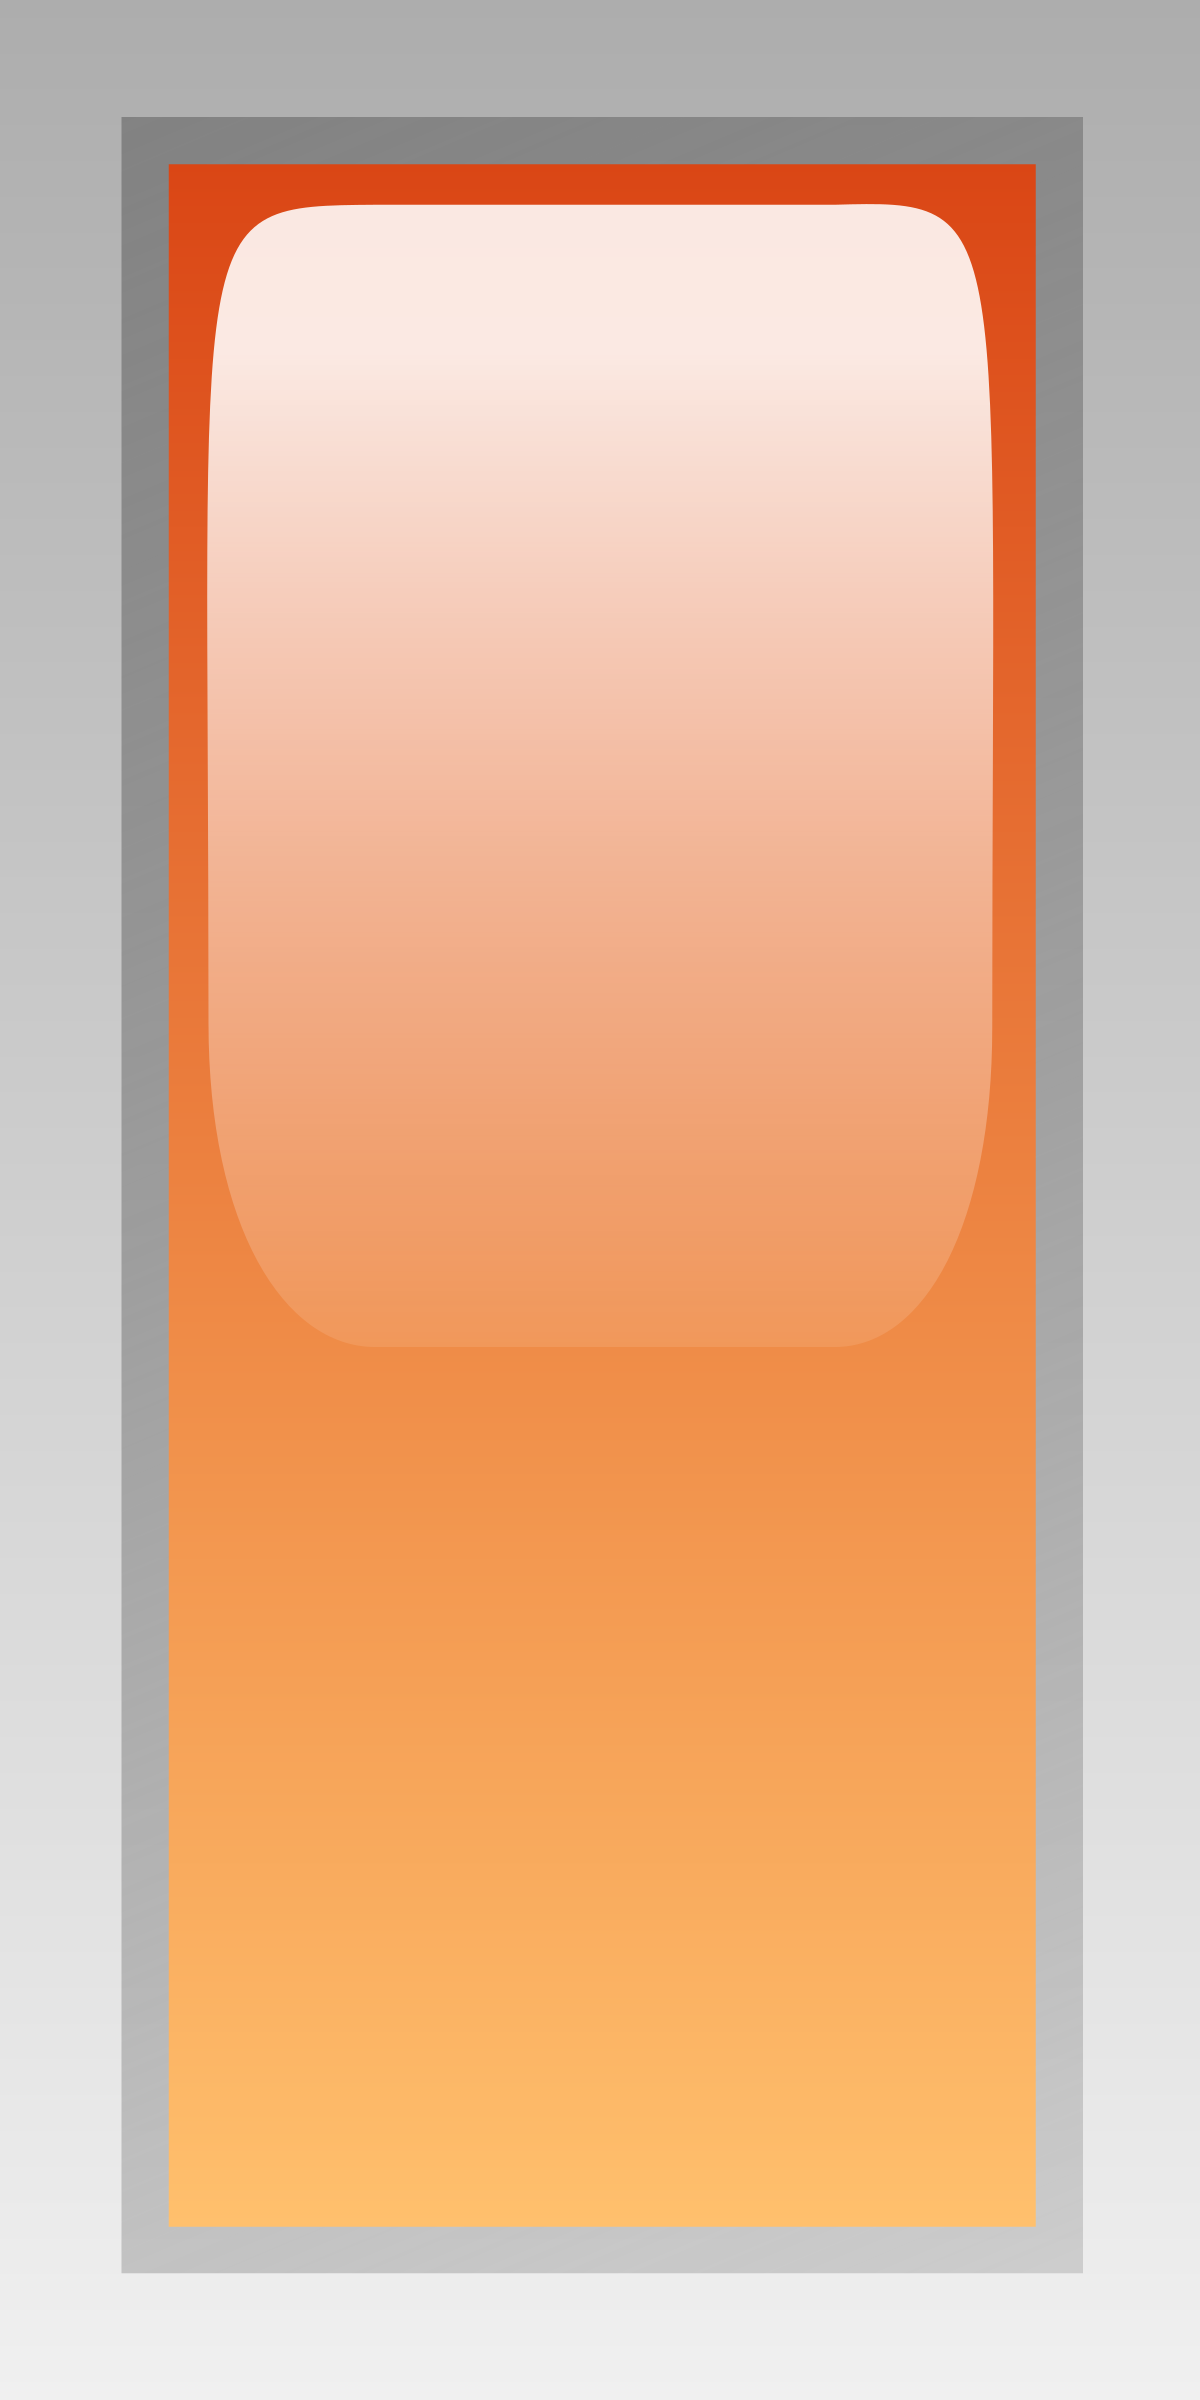 led rectangular h orange by jean_victor_balin